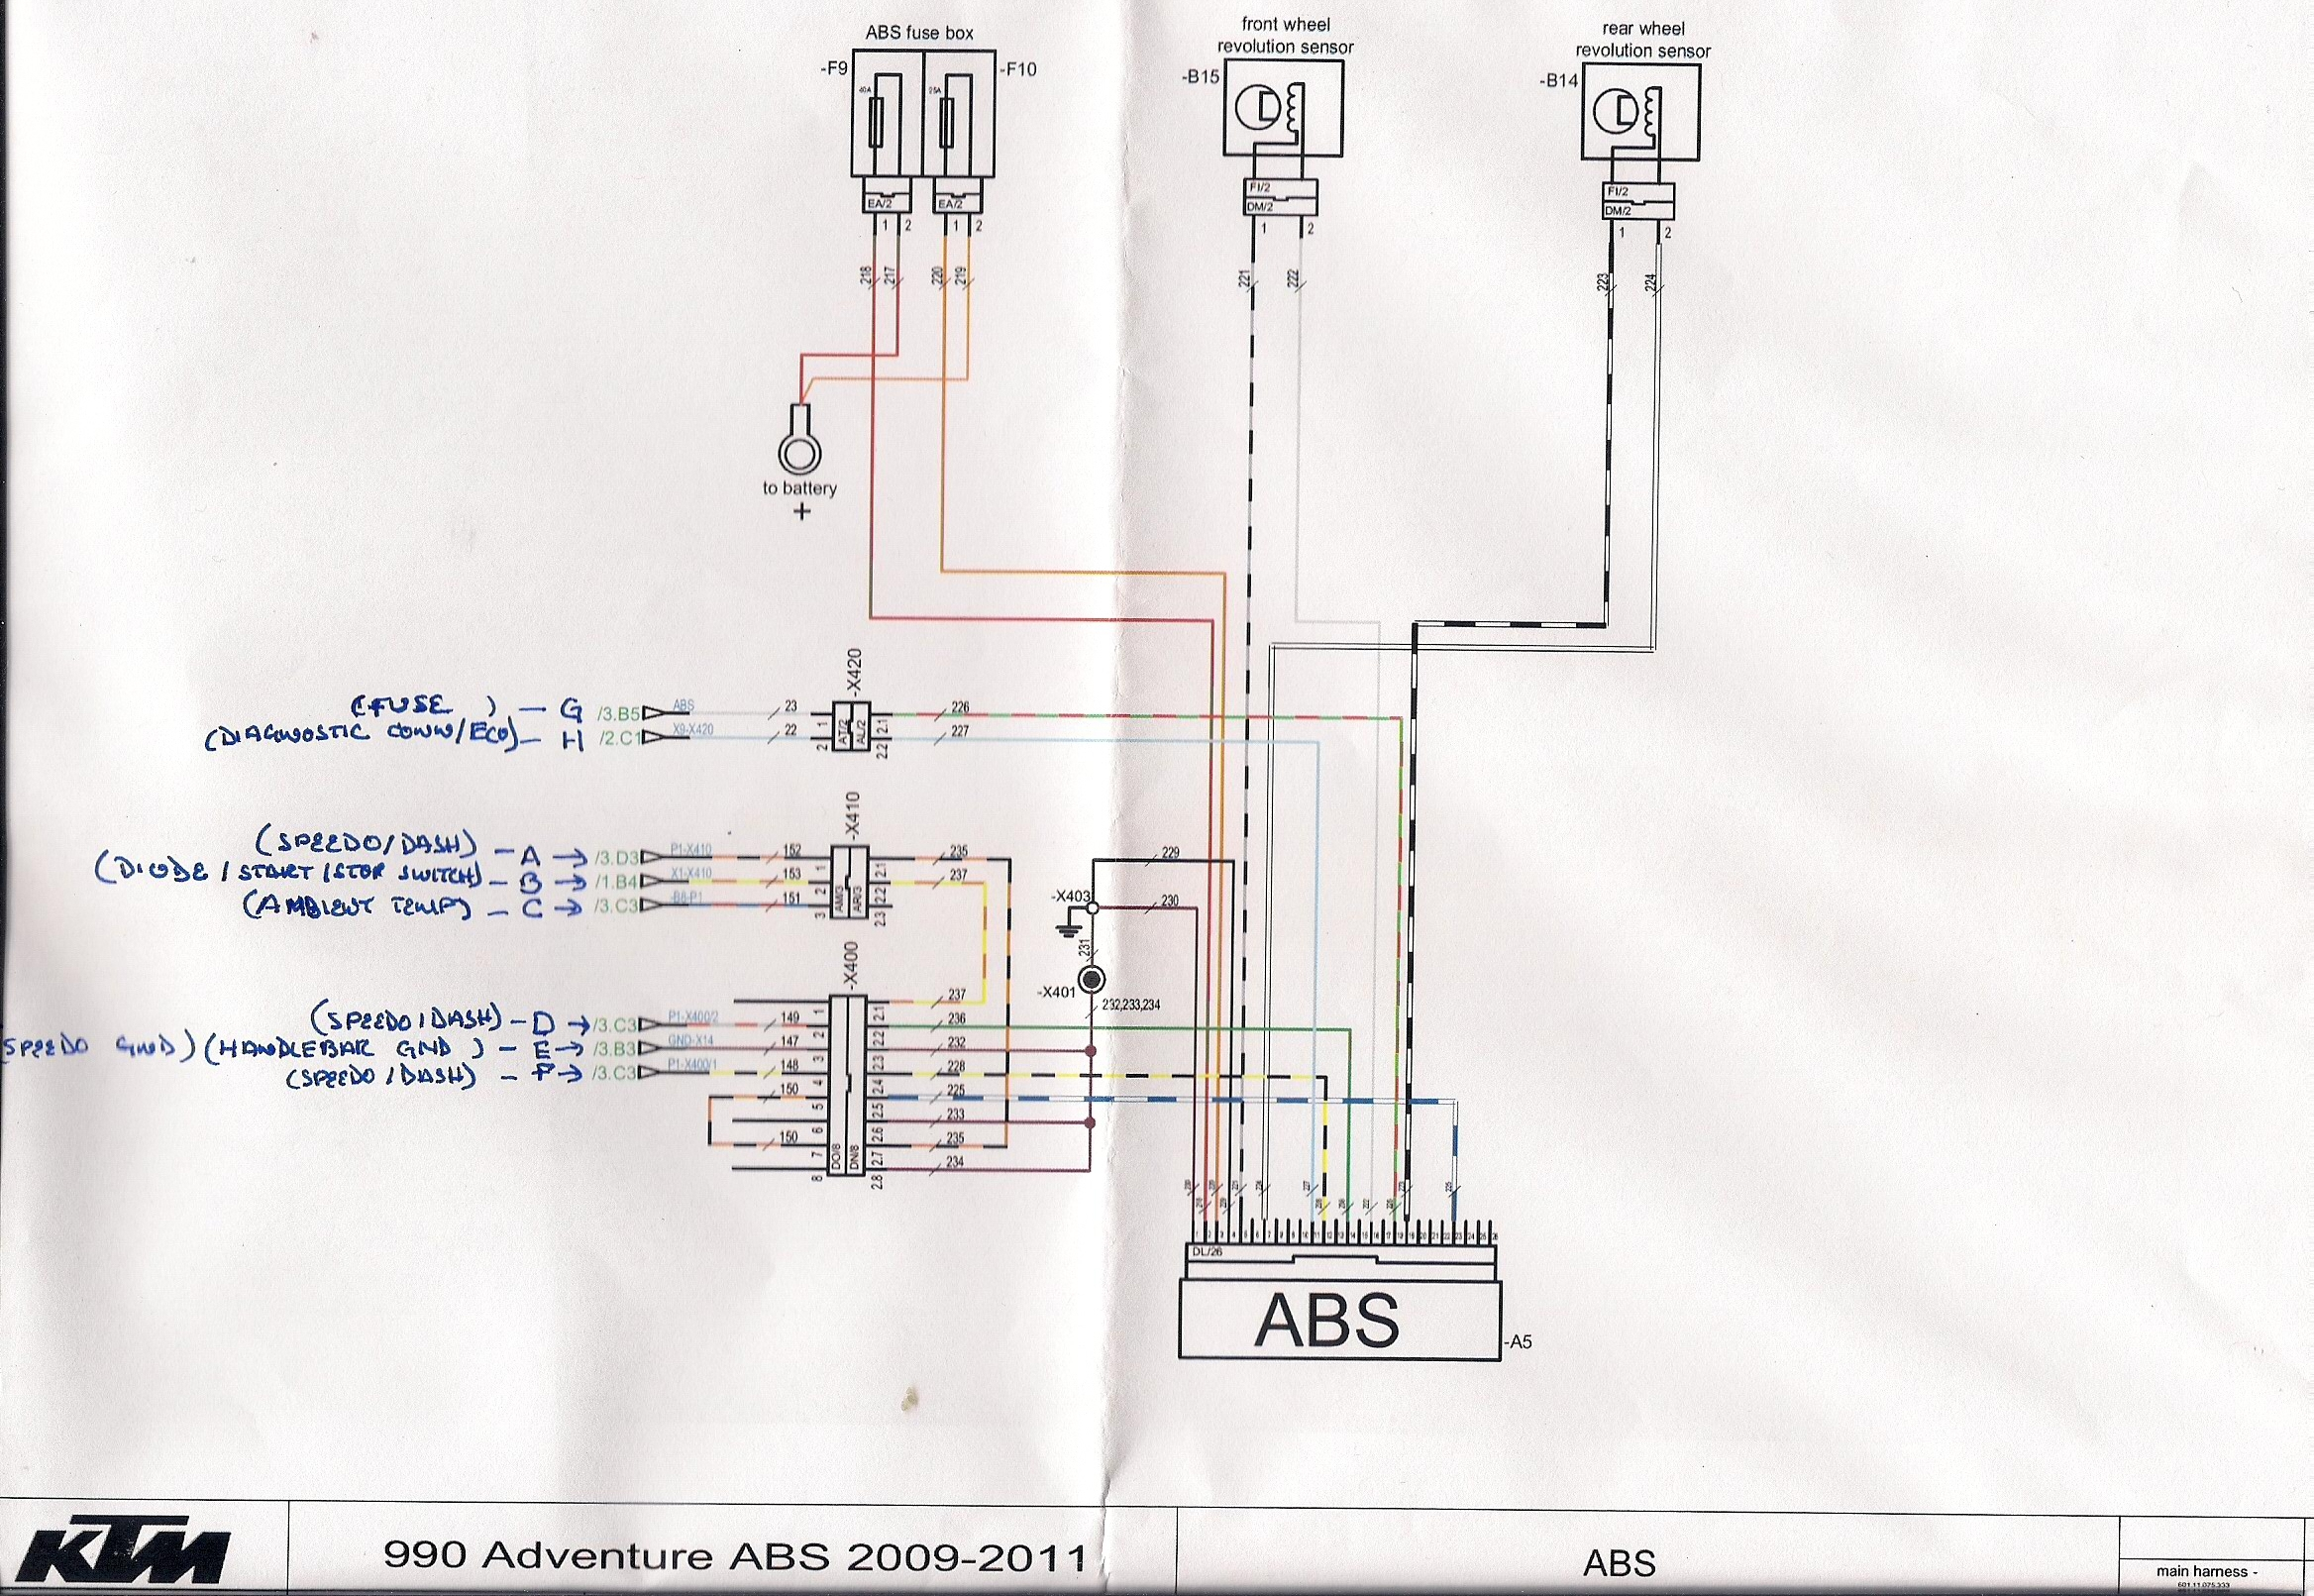 Ktm 990 Wiring Diagram | Wiring Diagram Ktm Adventure Wiring Diagram on